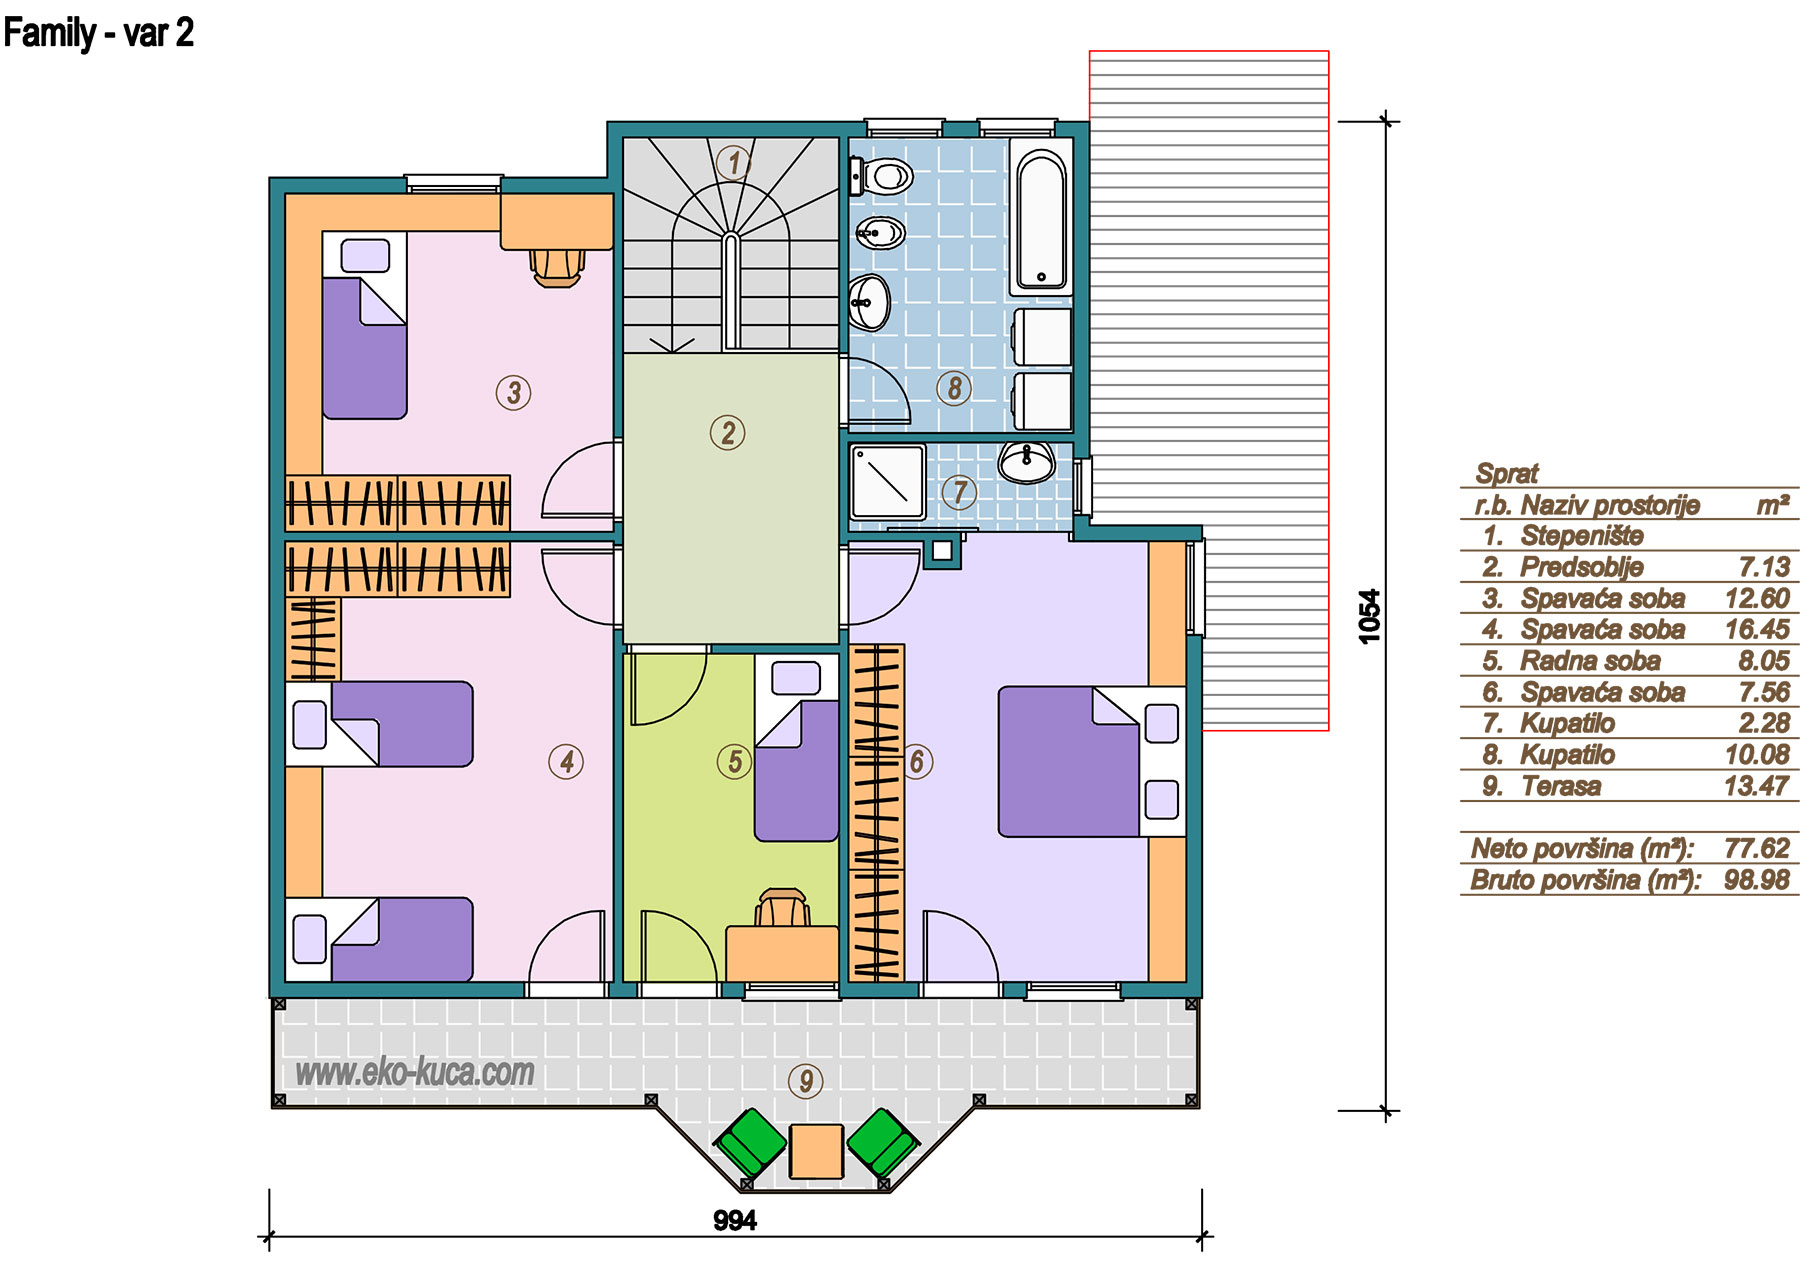 Prefabricated houses - Family 1 - Floor (storey) - varijanta 2